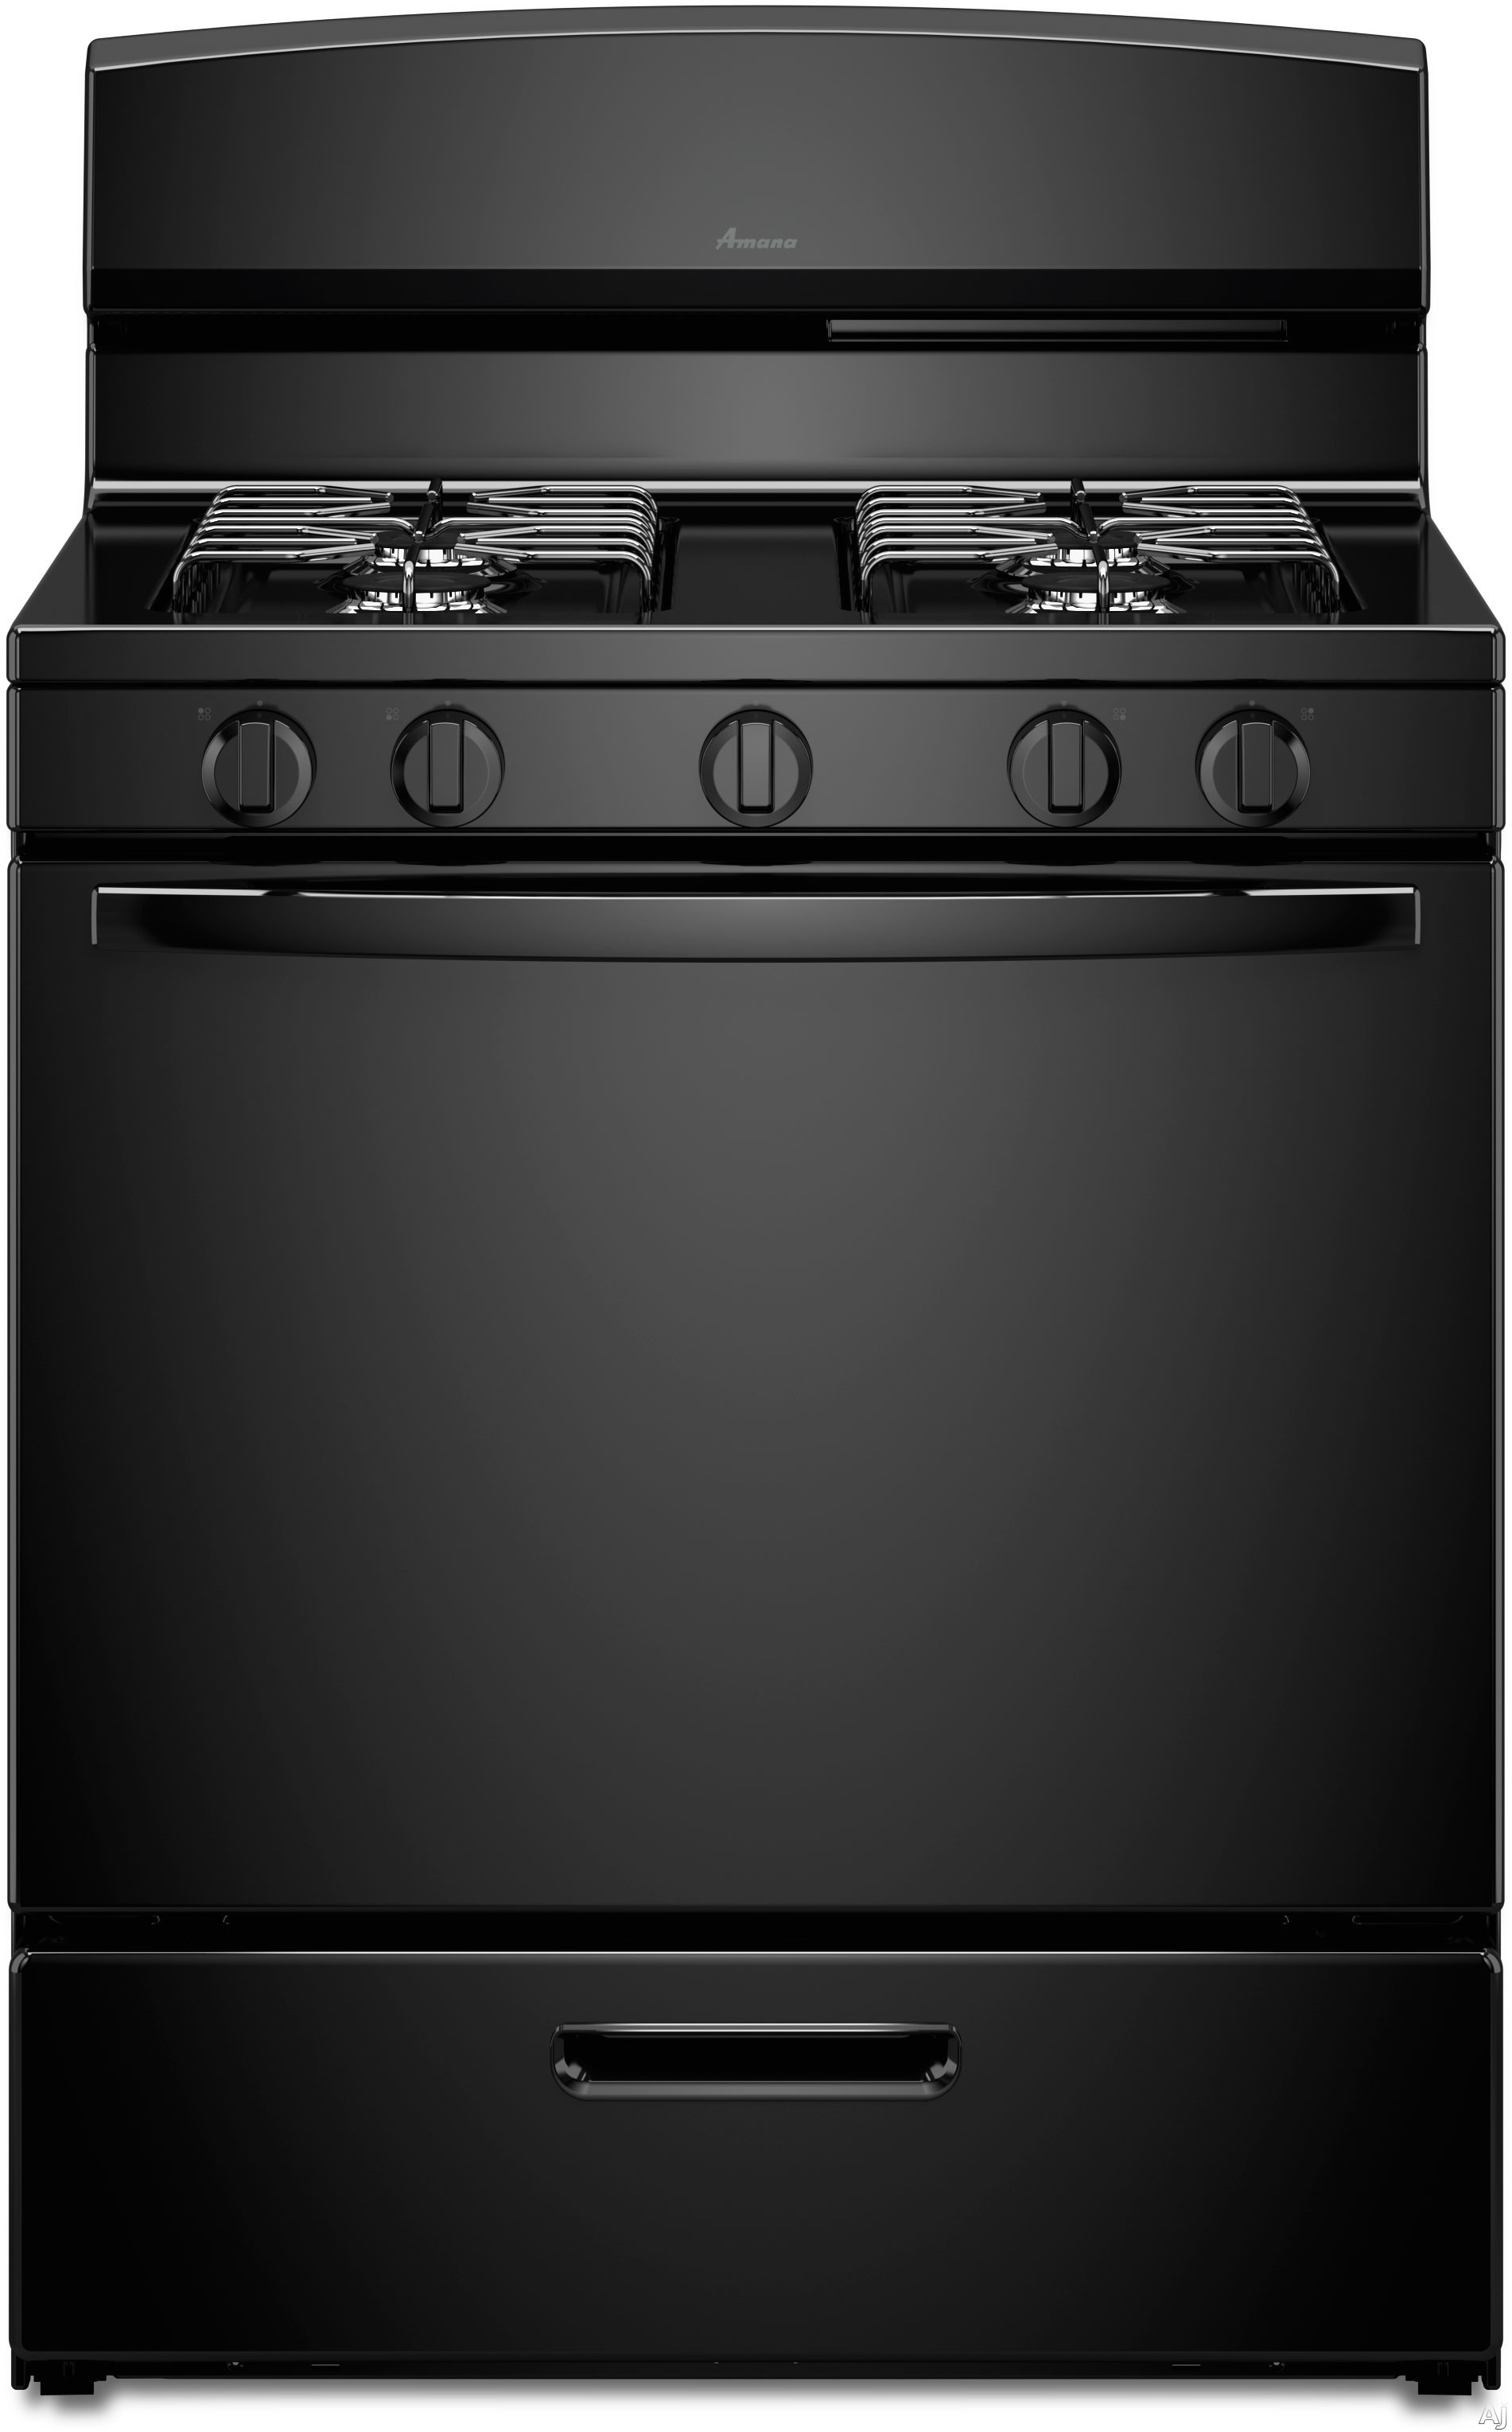 Amana AGR4230BA 30 Inch Freestanding Gas Range with 5.1 cu. ft. Capacity, 4 Sealed Burners, SpillSaver Upswept Cooktop, Broiler Drawer and LP Gas Conversion Kit Included